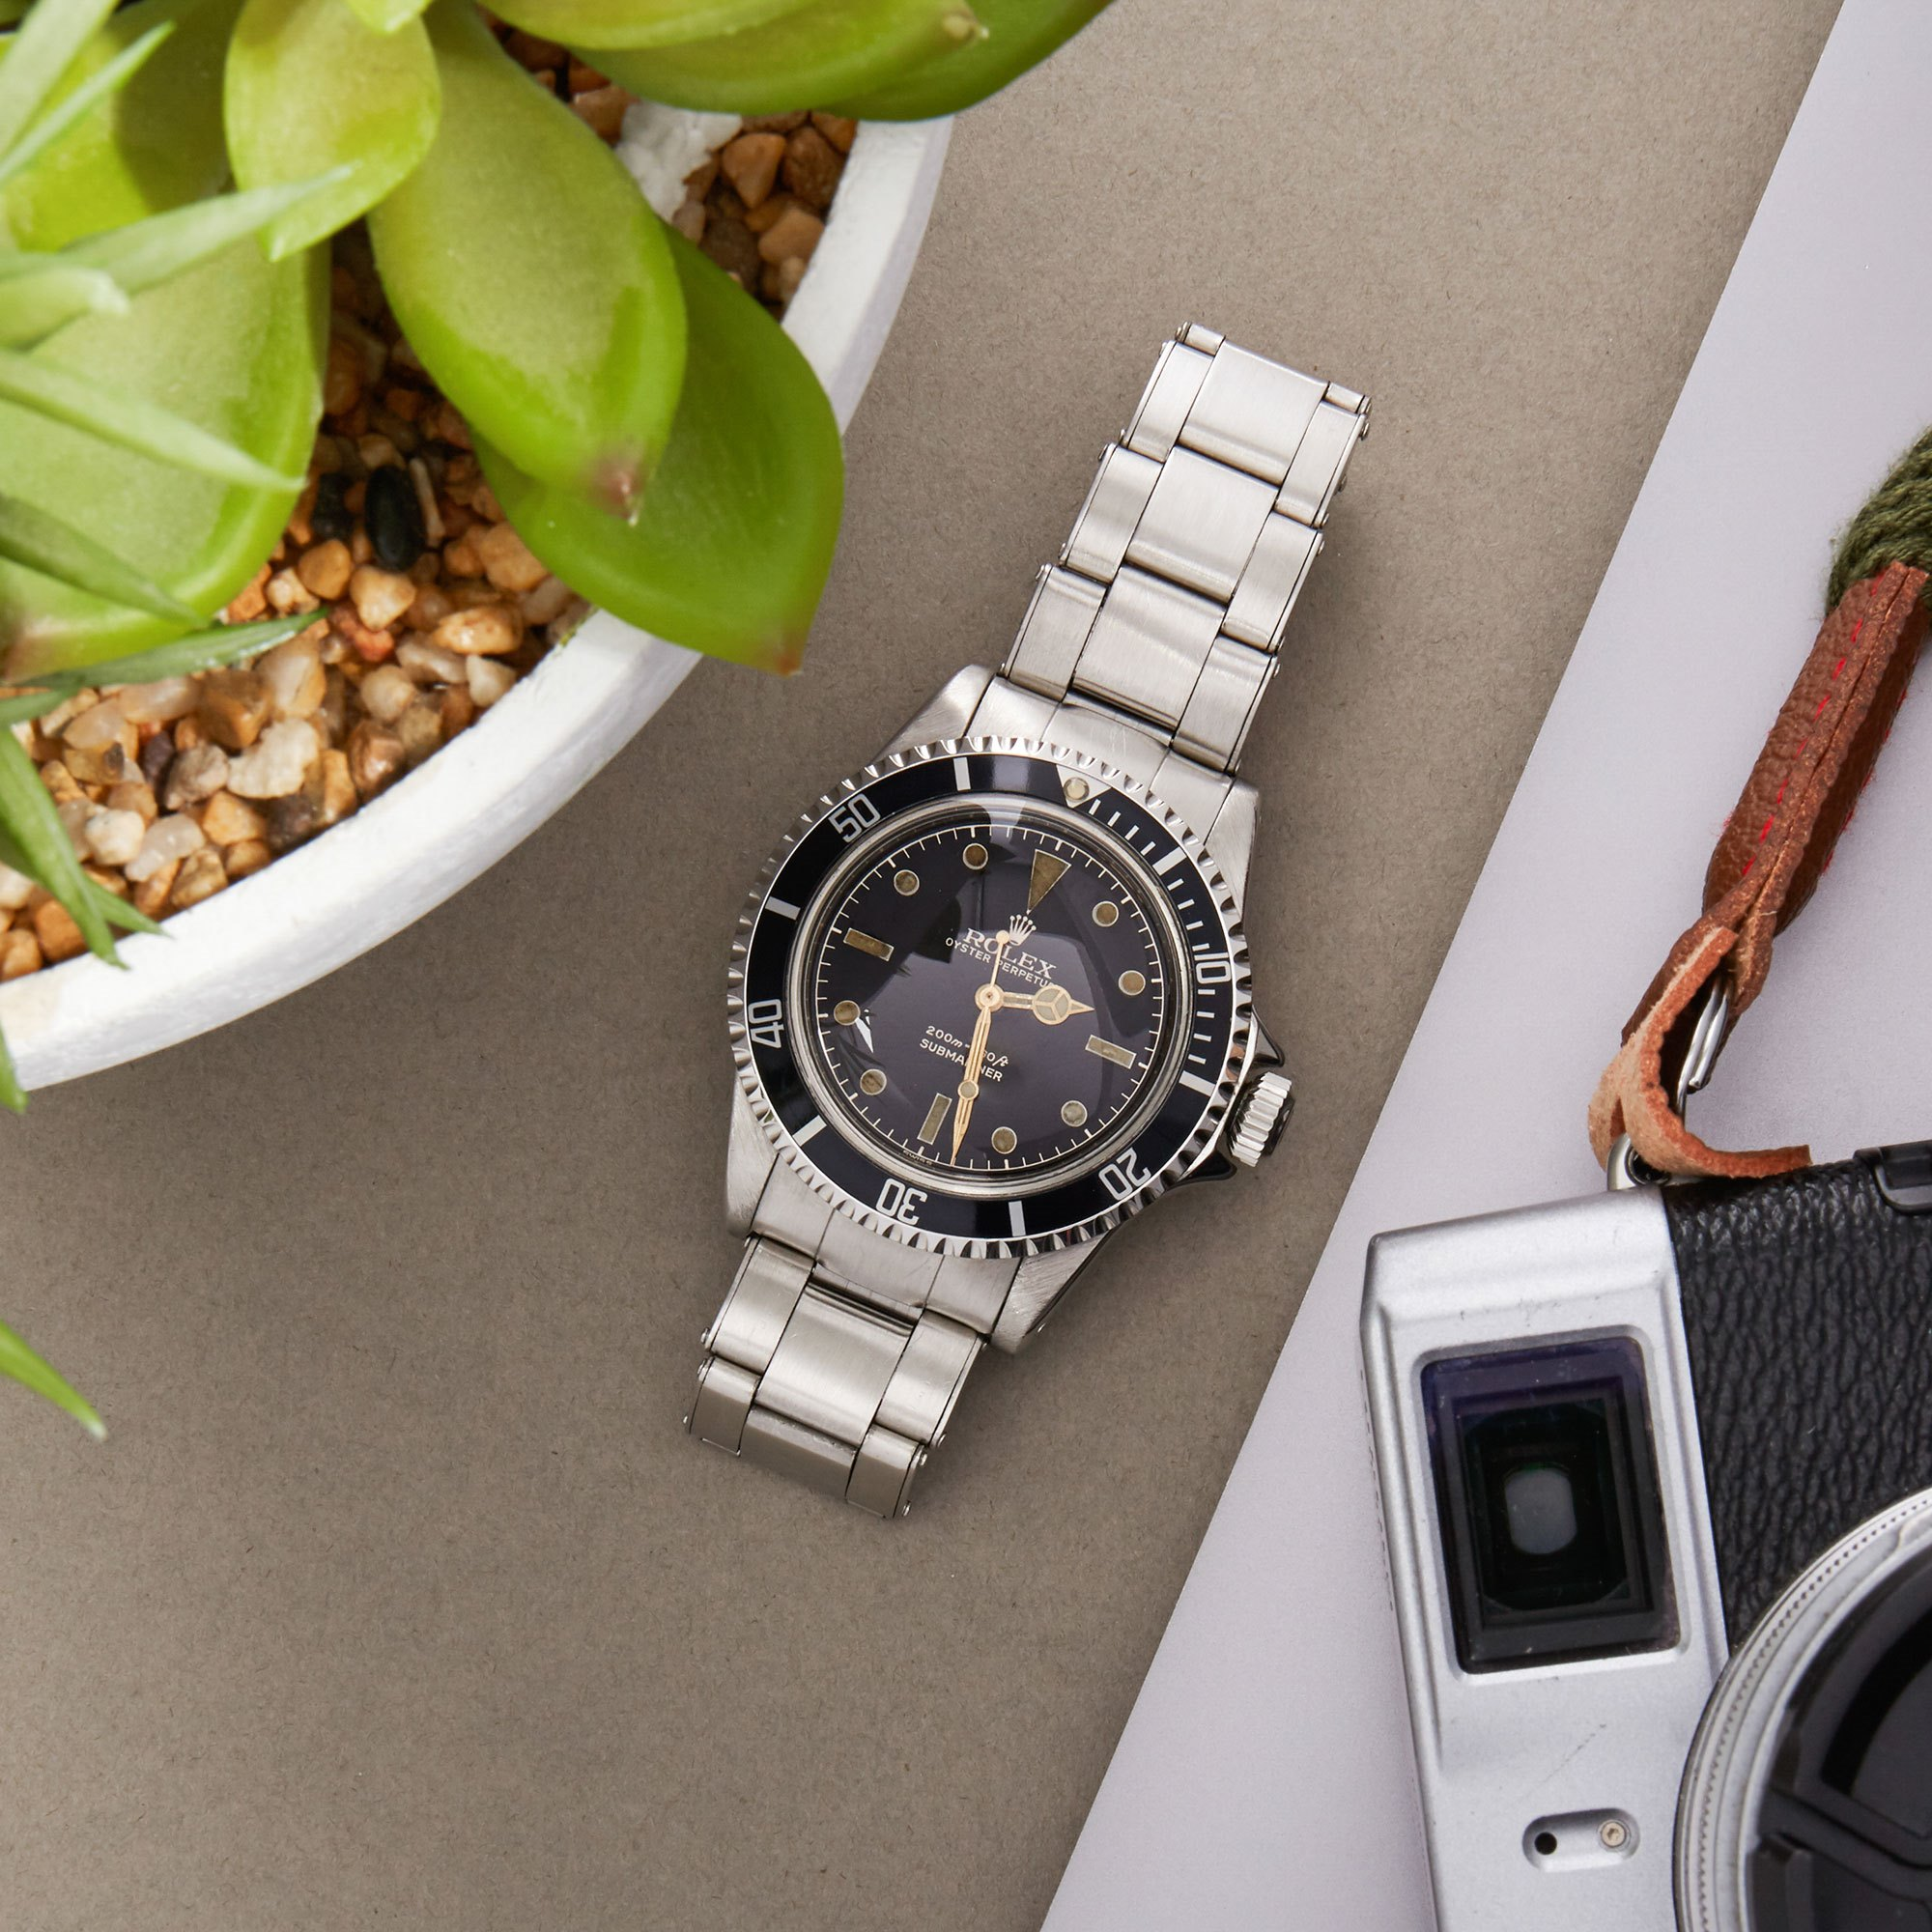 Rolex Submariner Non Date PGC Gilt Gloss Meters First Stainless Steel - 5512 Stainless Steel 5512